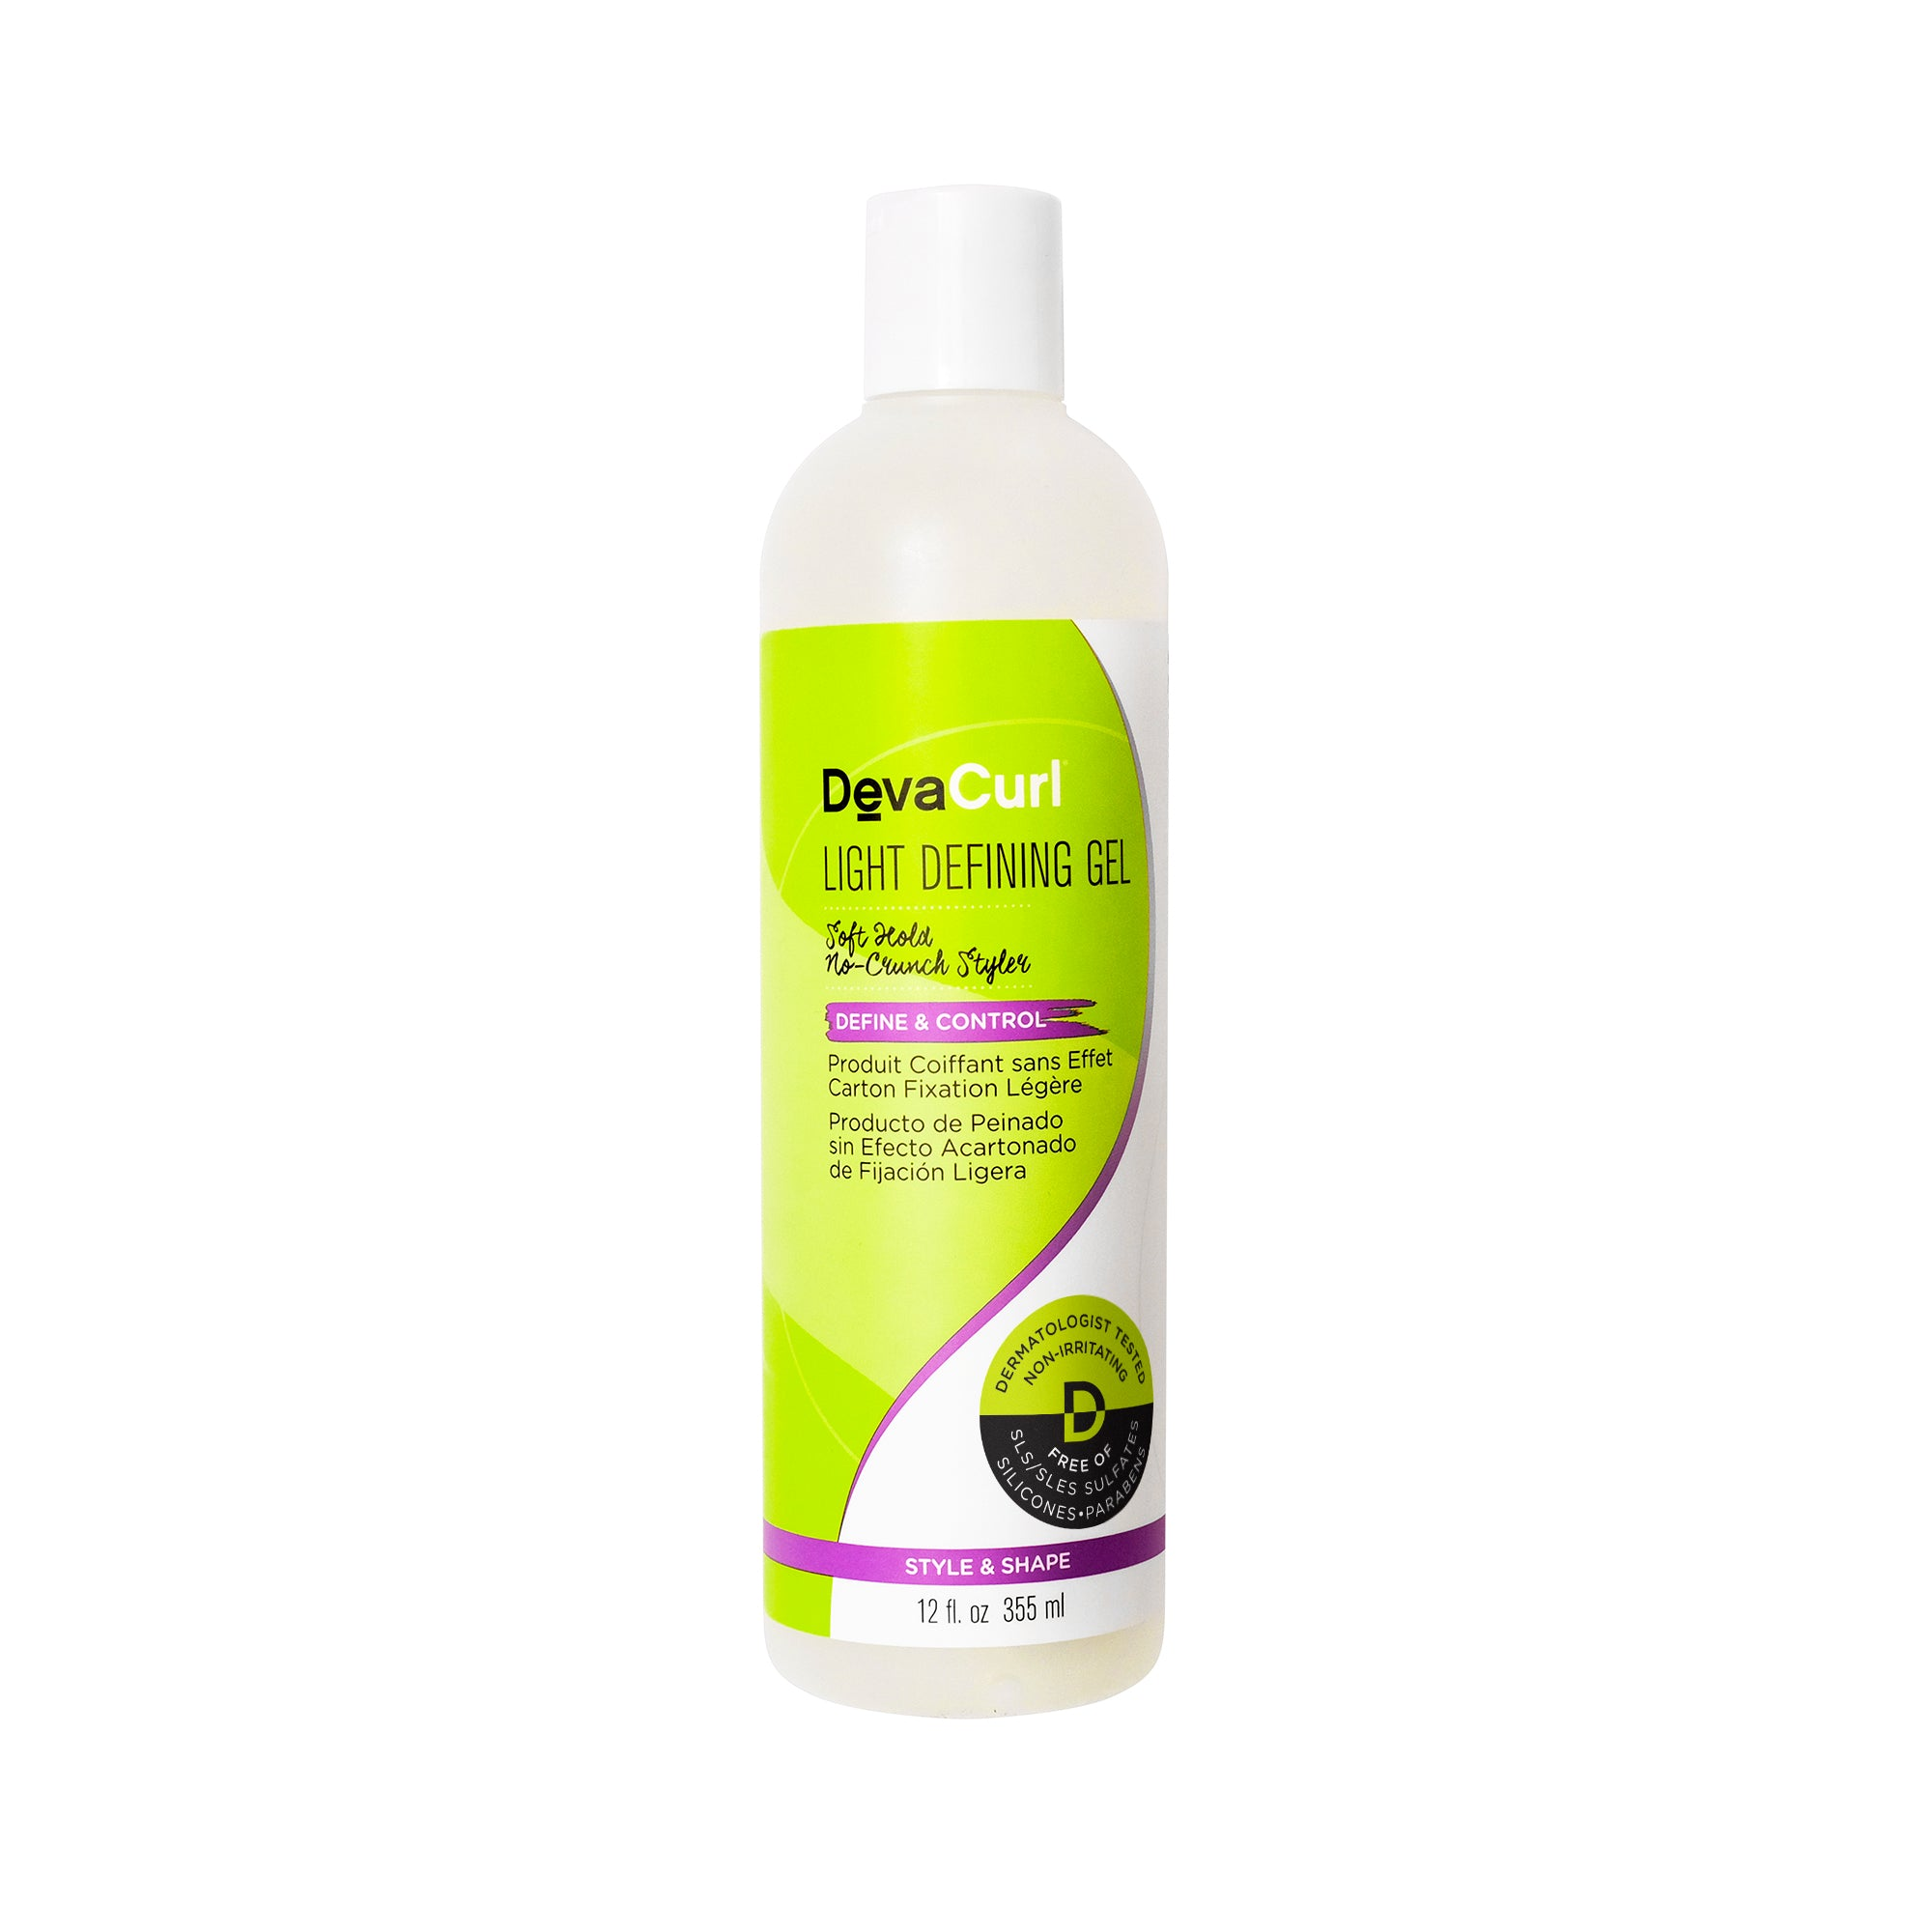 DevaCurl light defining gel 32 oz